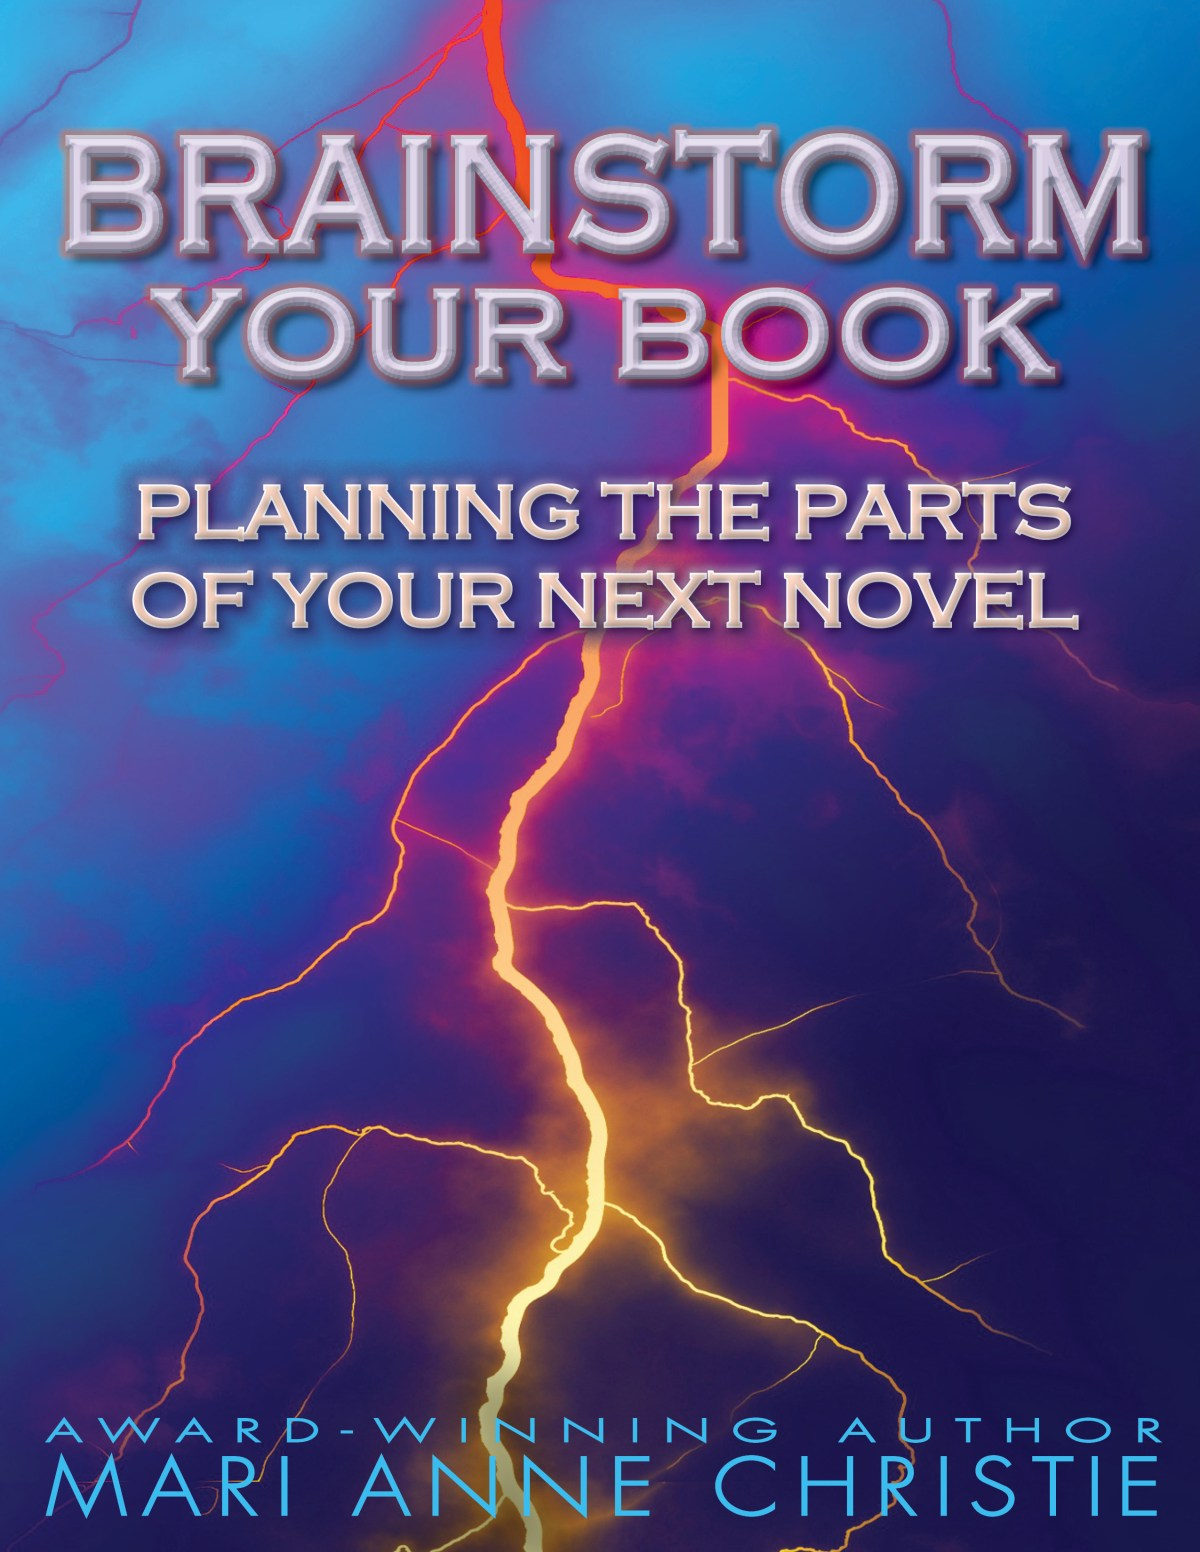 Brainstorm Your Book: Planning the Parts of Your Next Novel